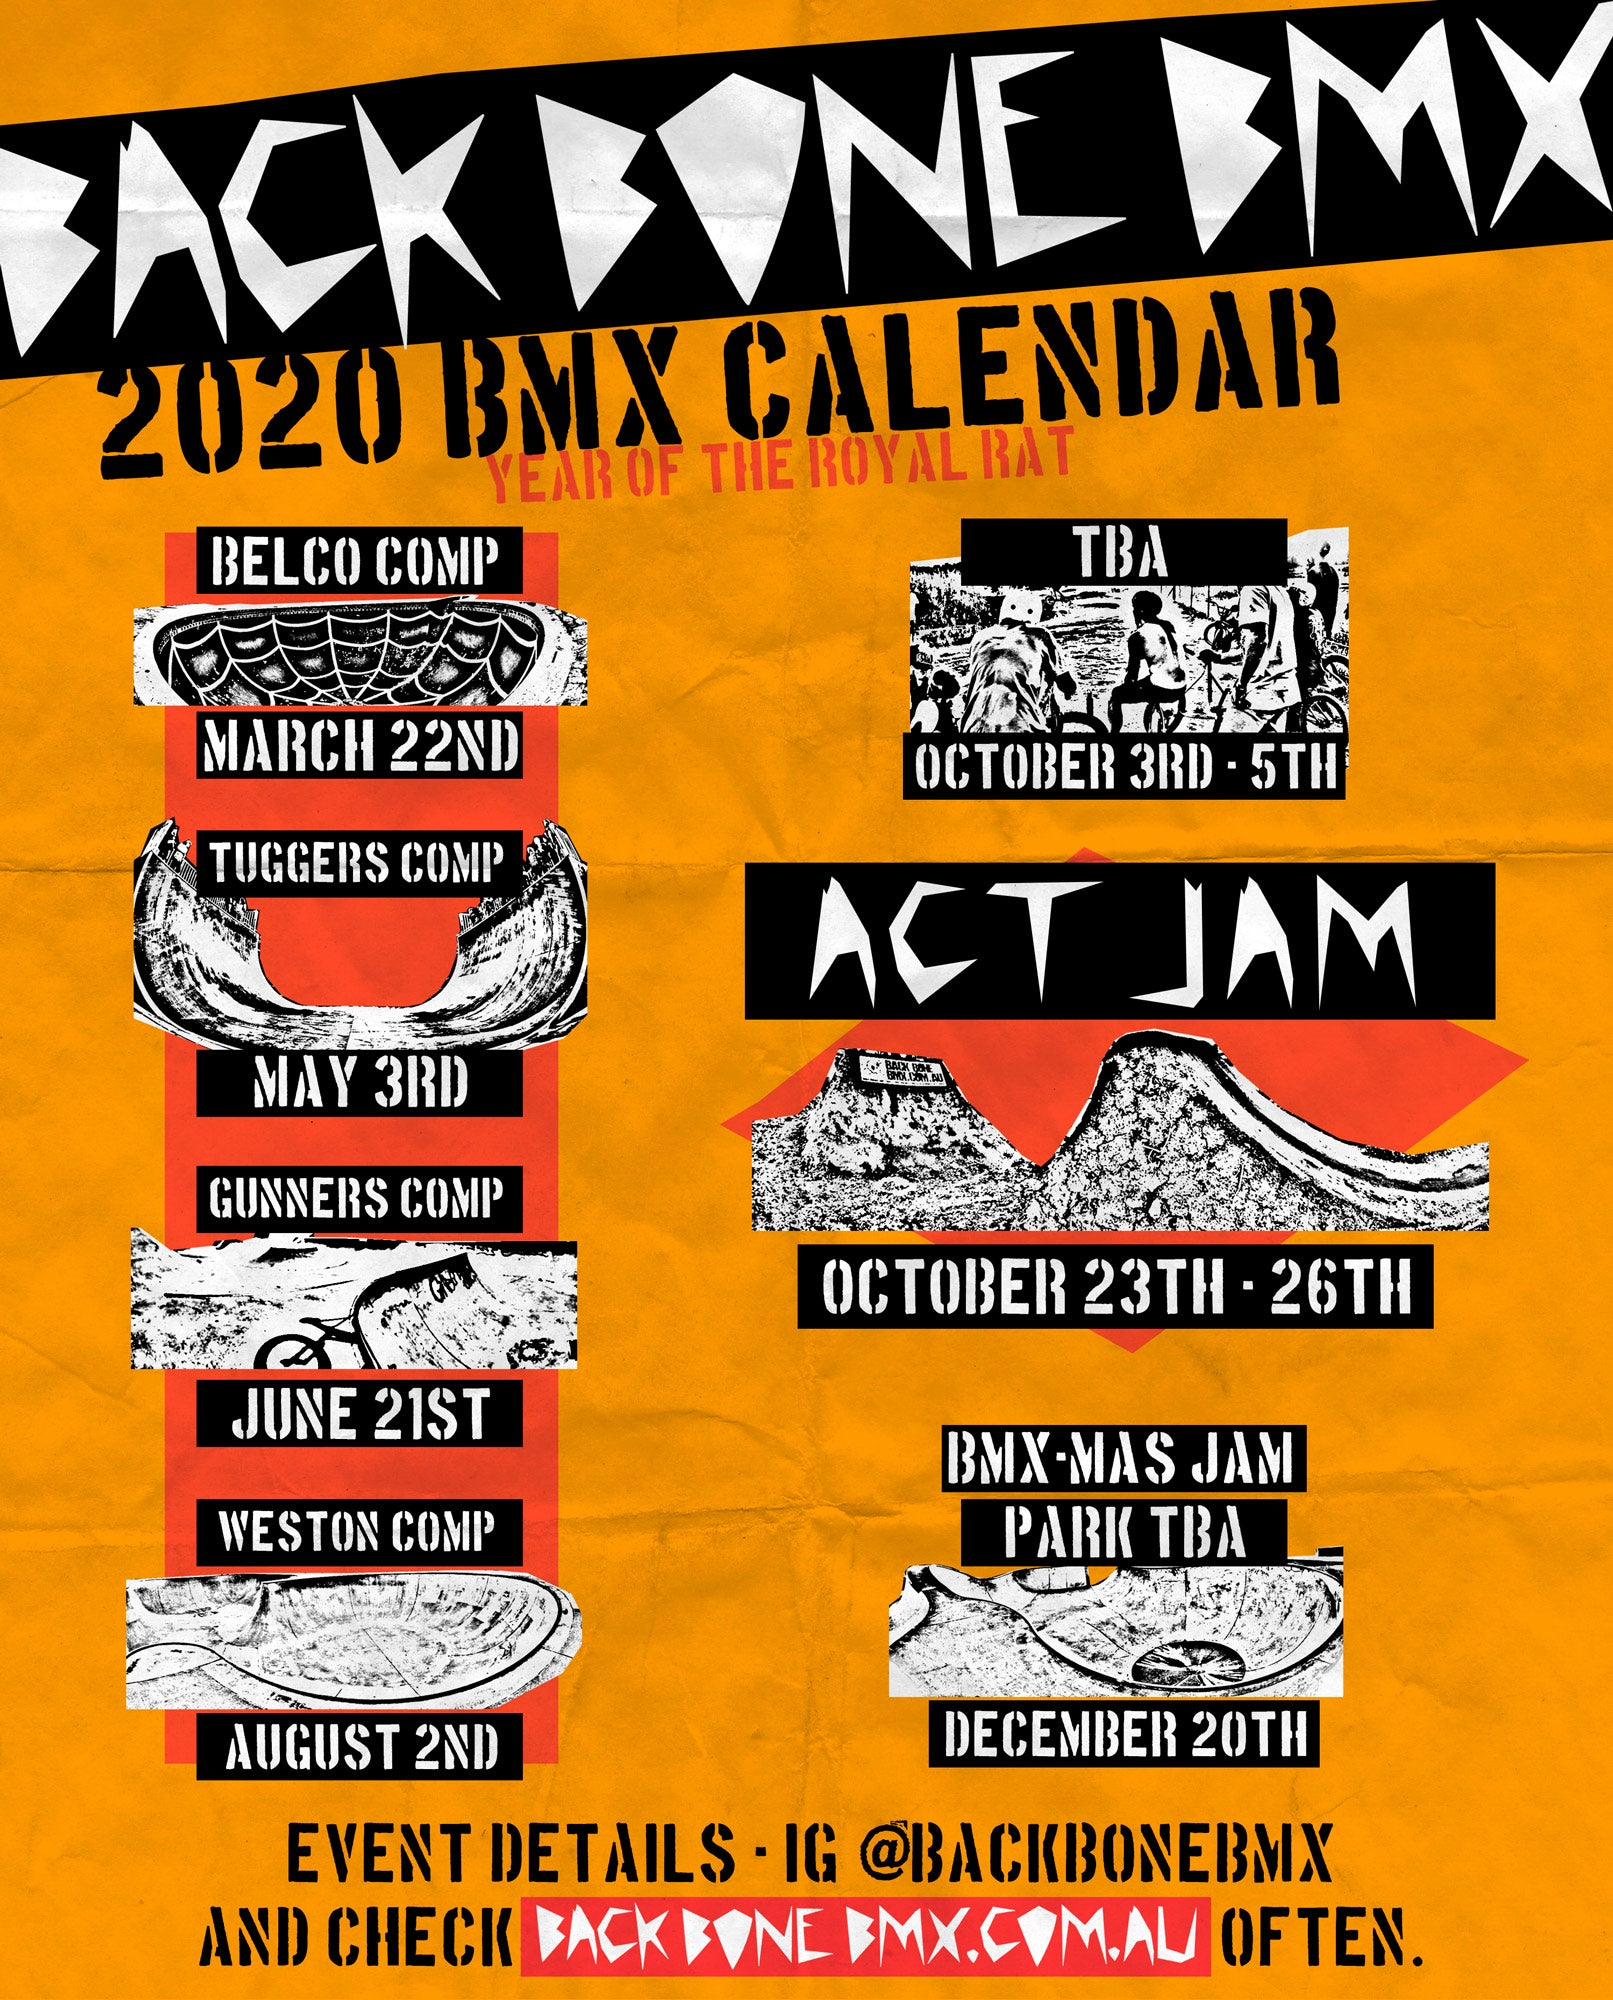 Back Bone BMX events calendar 2020